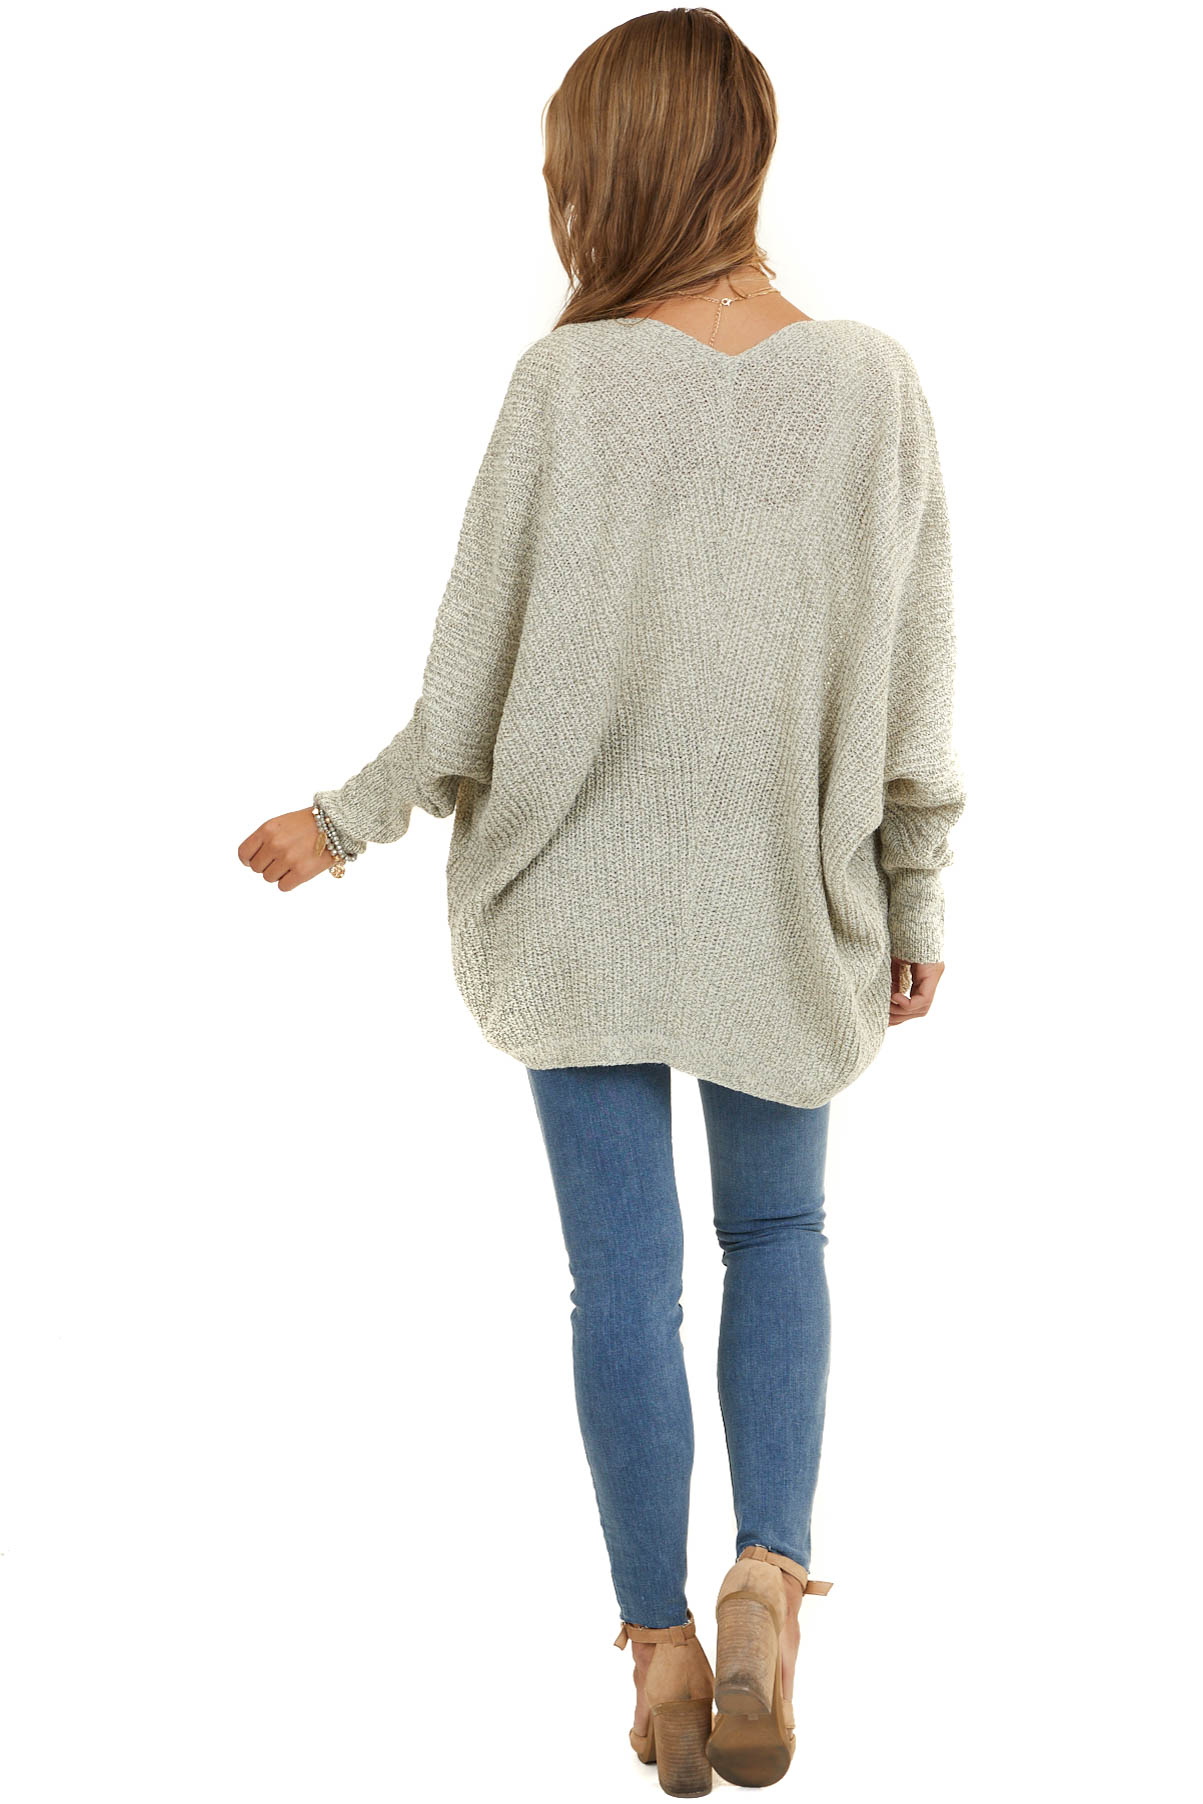 Oatmeal Open Front Cardigan with 3/4 Dolman Sleeves